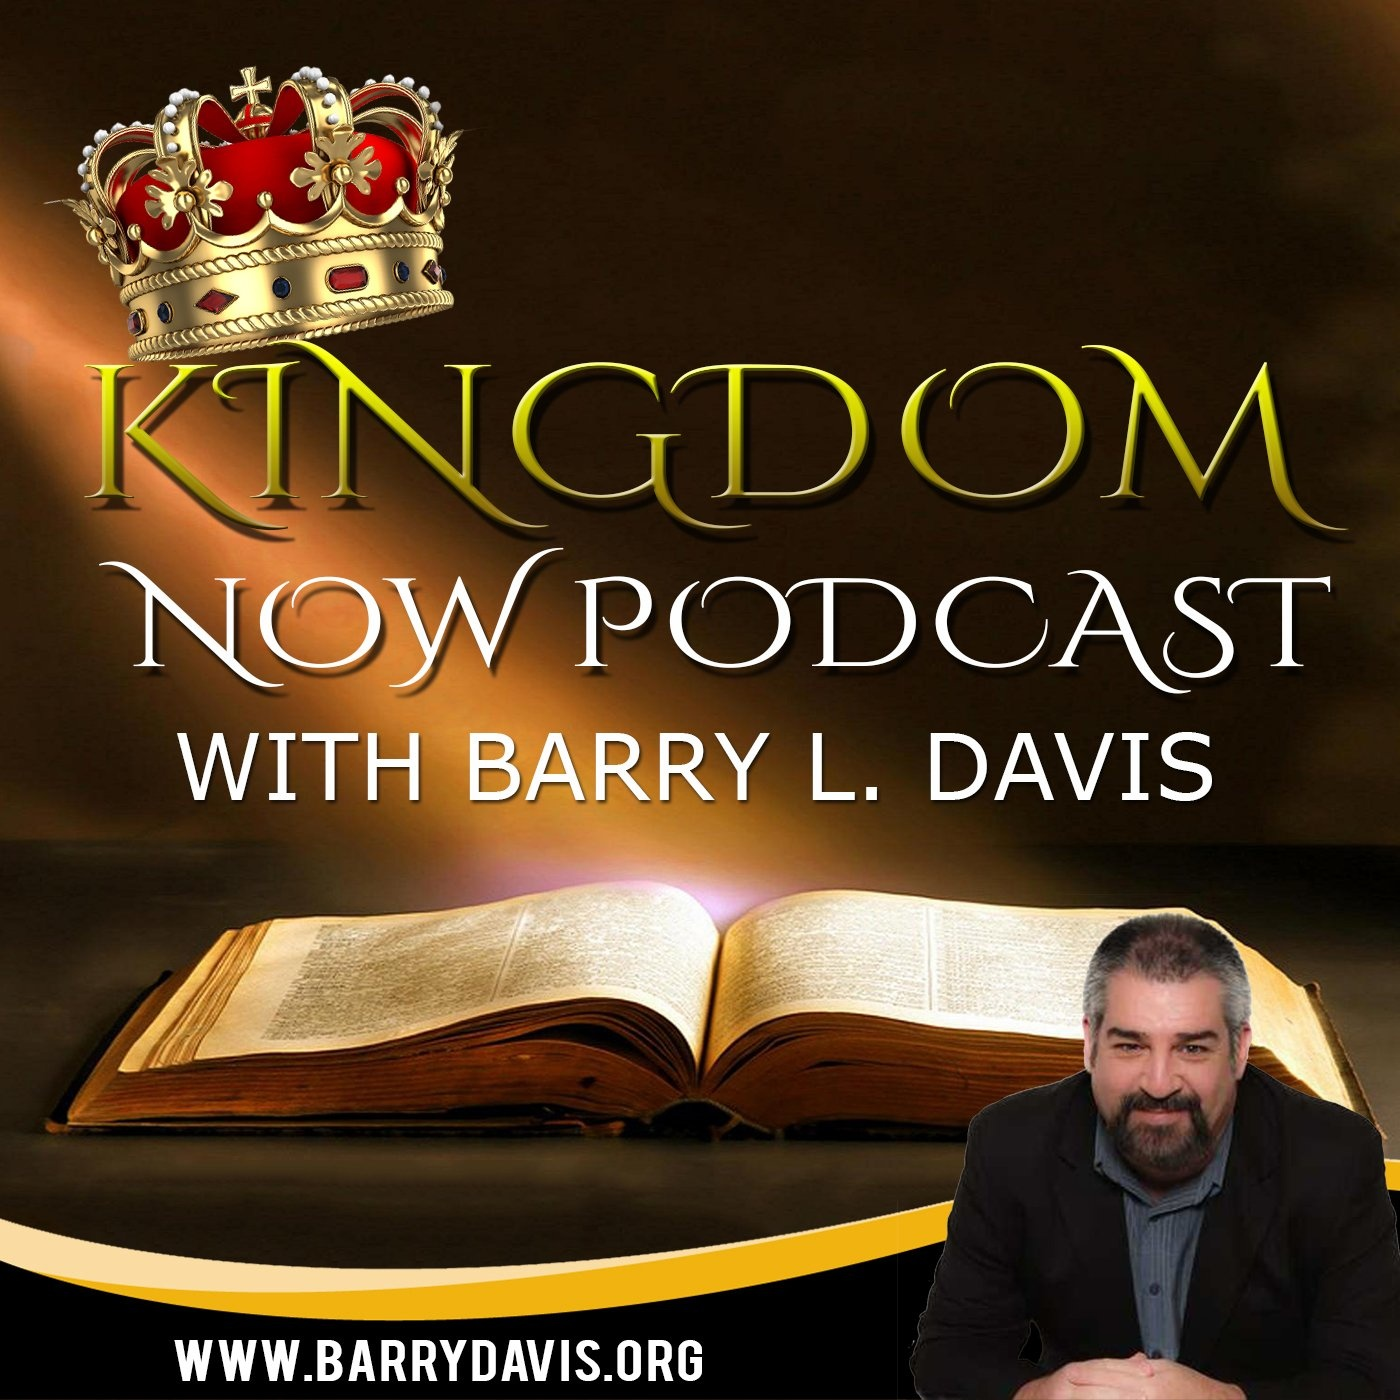 Barry L. Davis | Kingdom Now